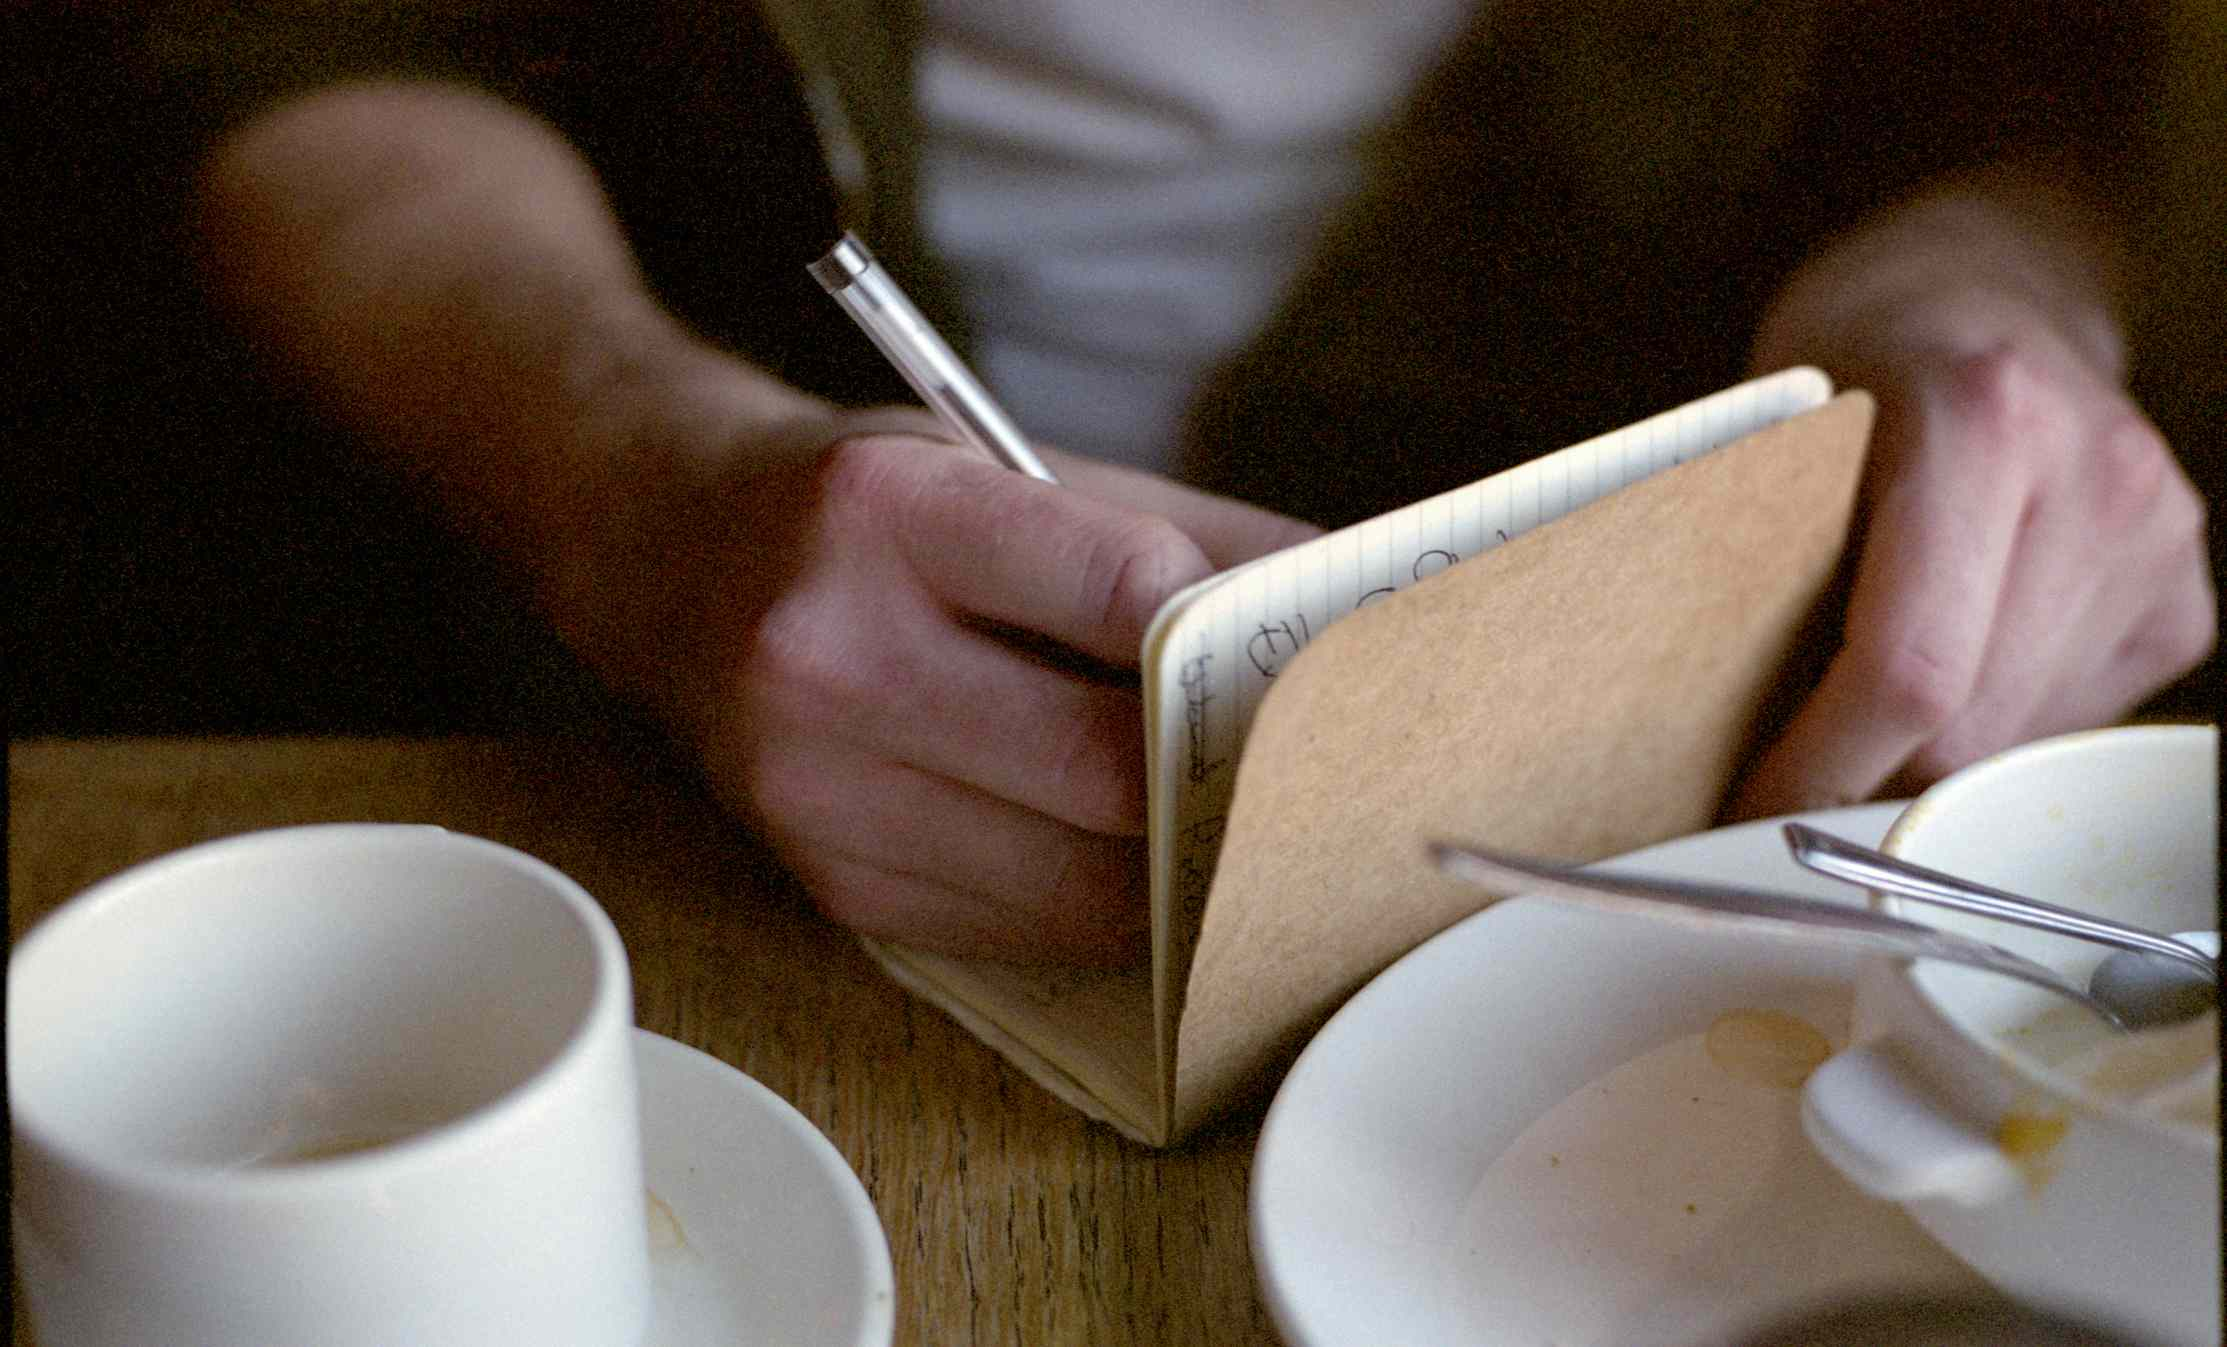 Hands writing in notebook, surrounded by empty coffee cup